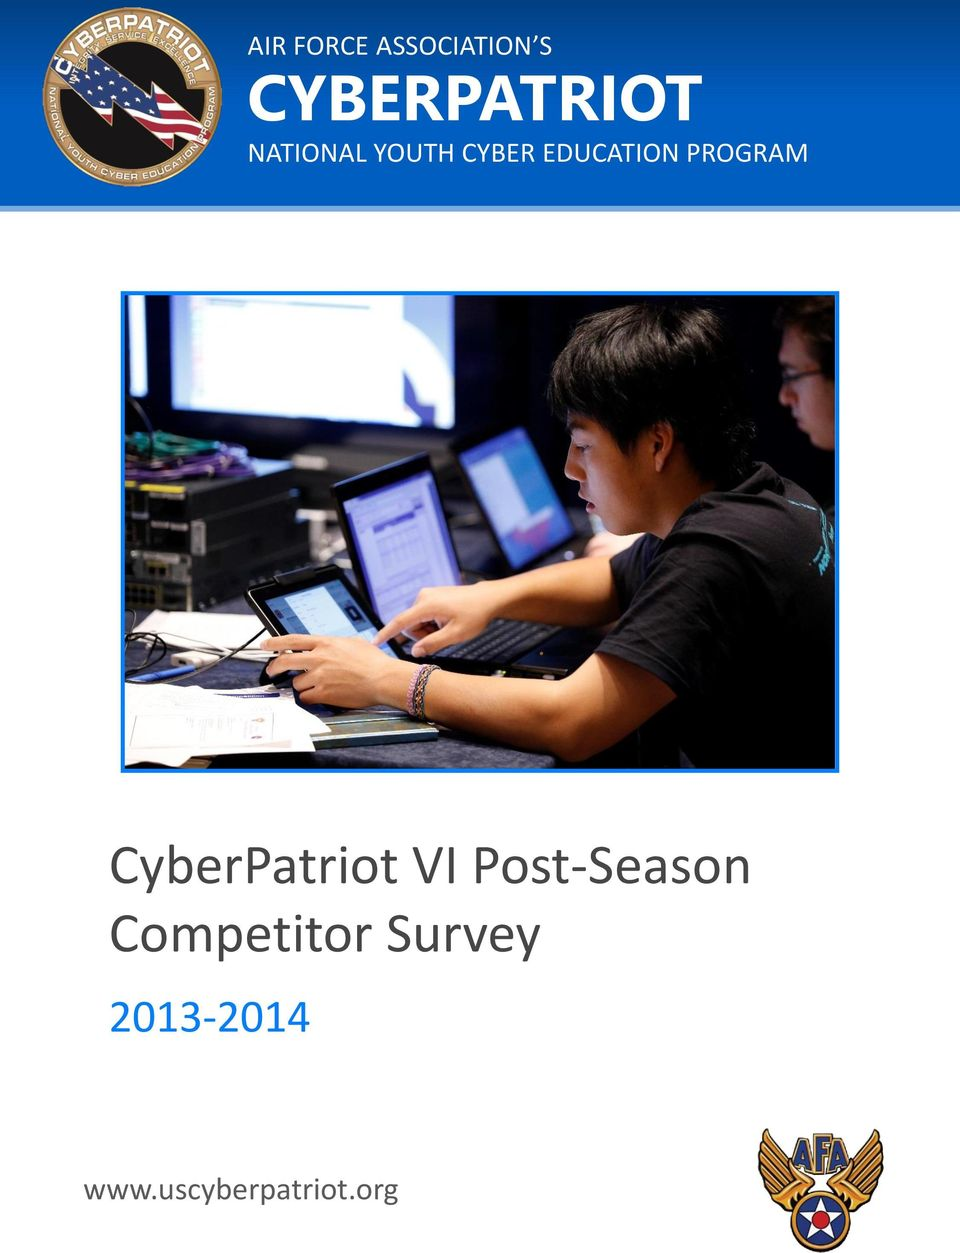 CyberPatriot VI Post-Season Competitor